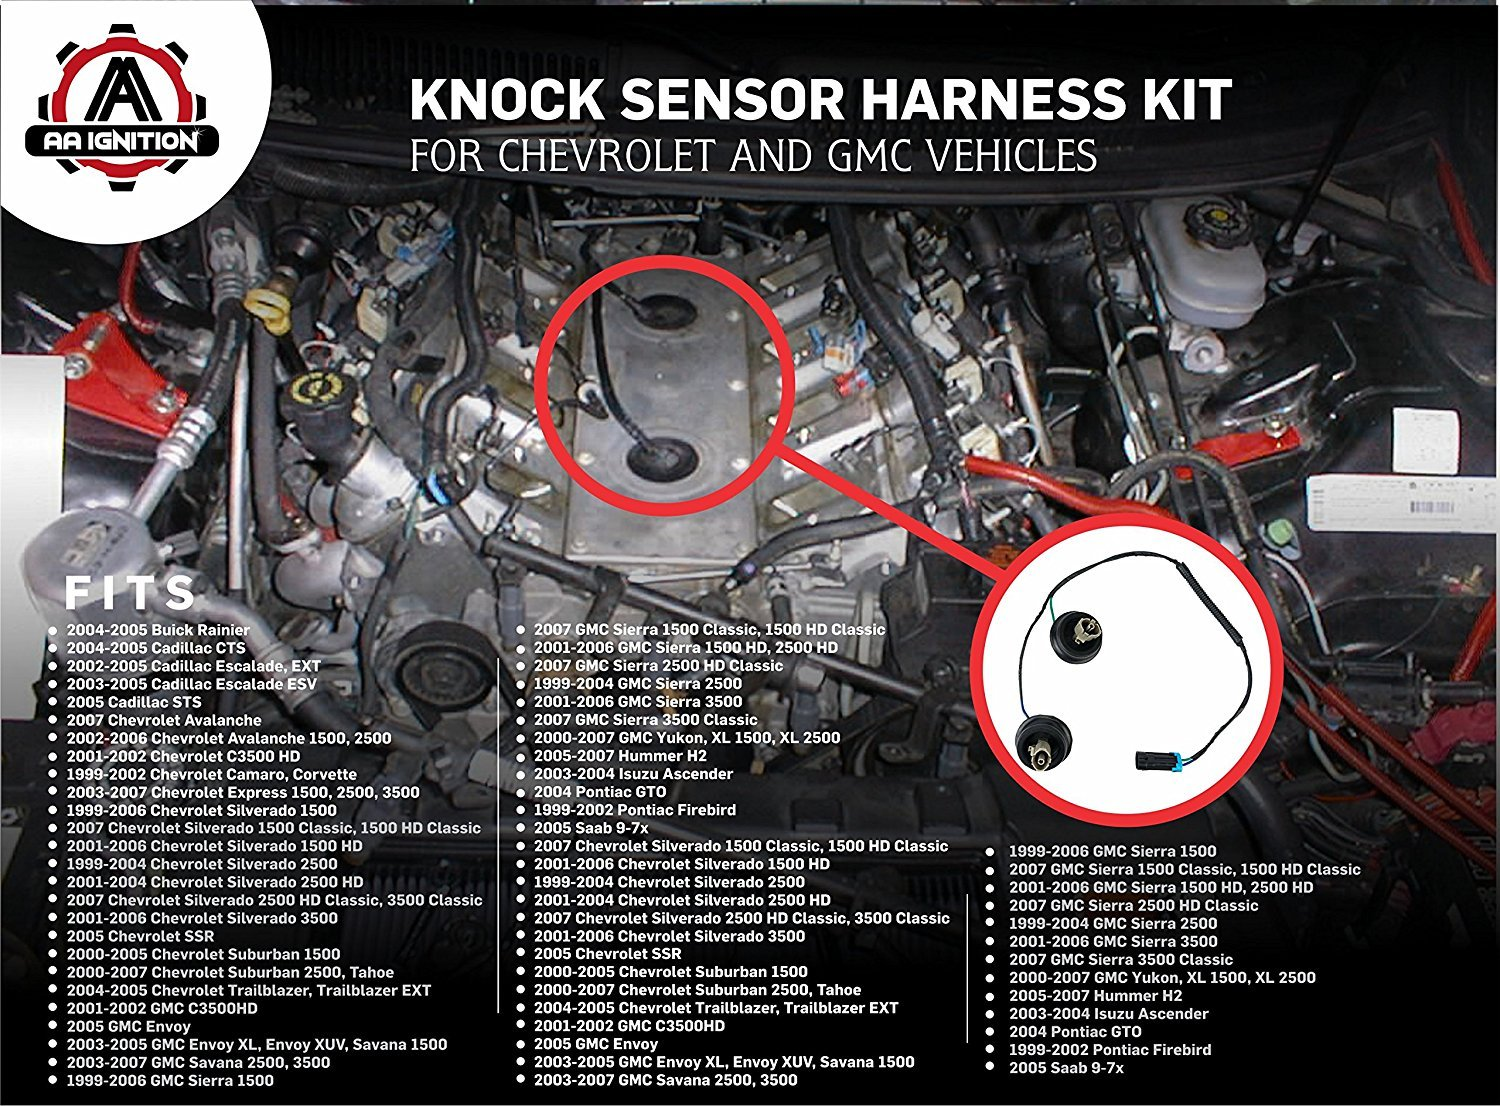 Knock Sensor Wire Harness Kit Replaces 12601822 917 033 Wiring Diagram Also Chevrolet Suburban Car On For Dual Fits Chevy Silverado Avalanche Tahoe Gmc Sierra Yukon